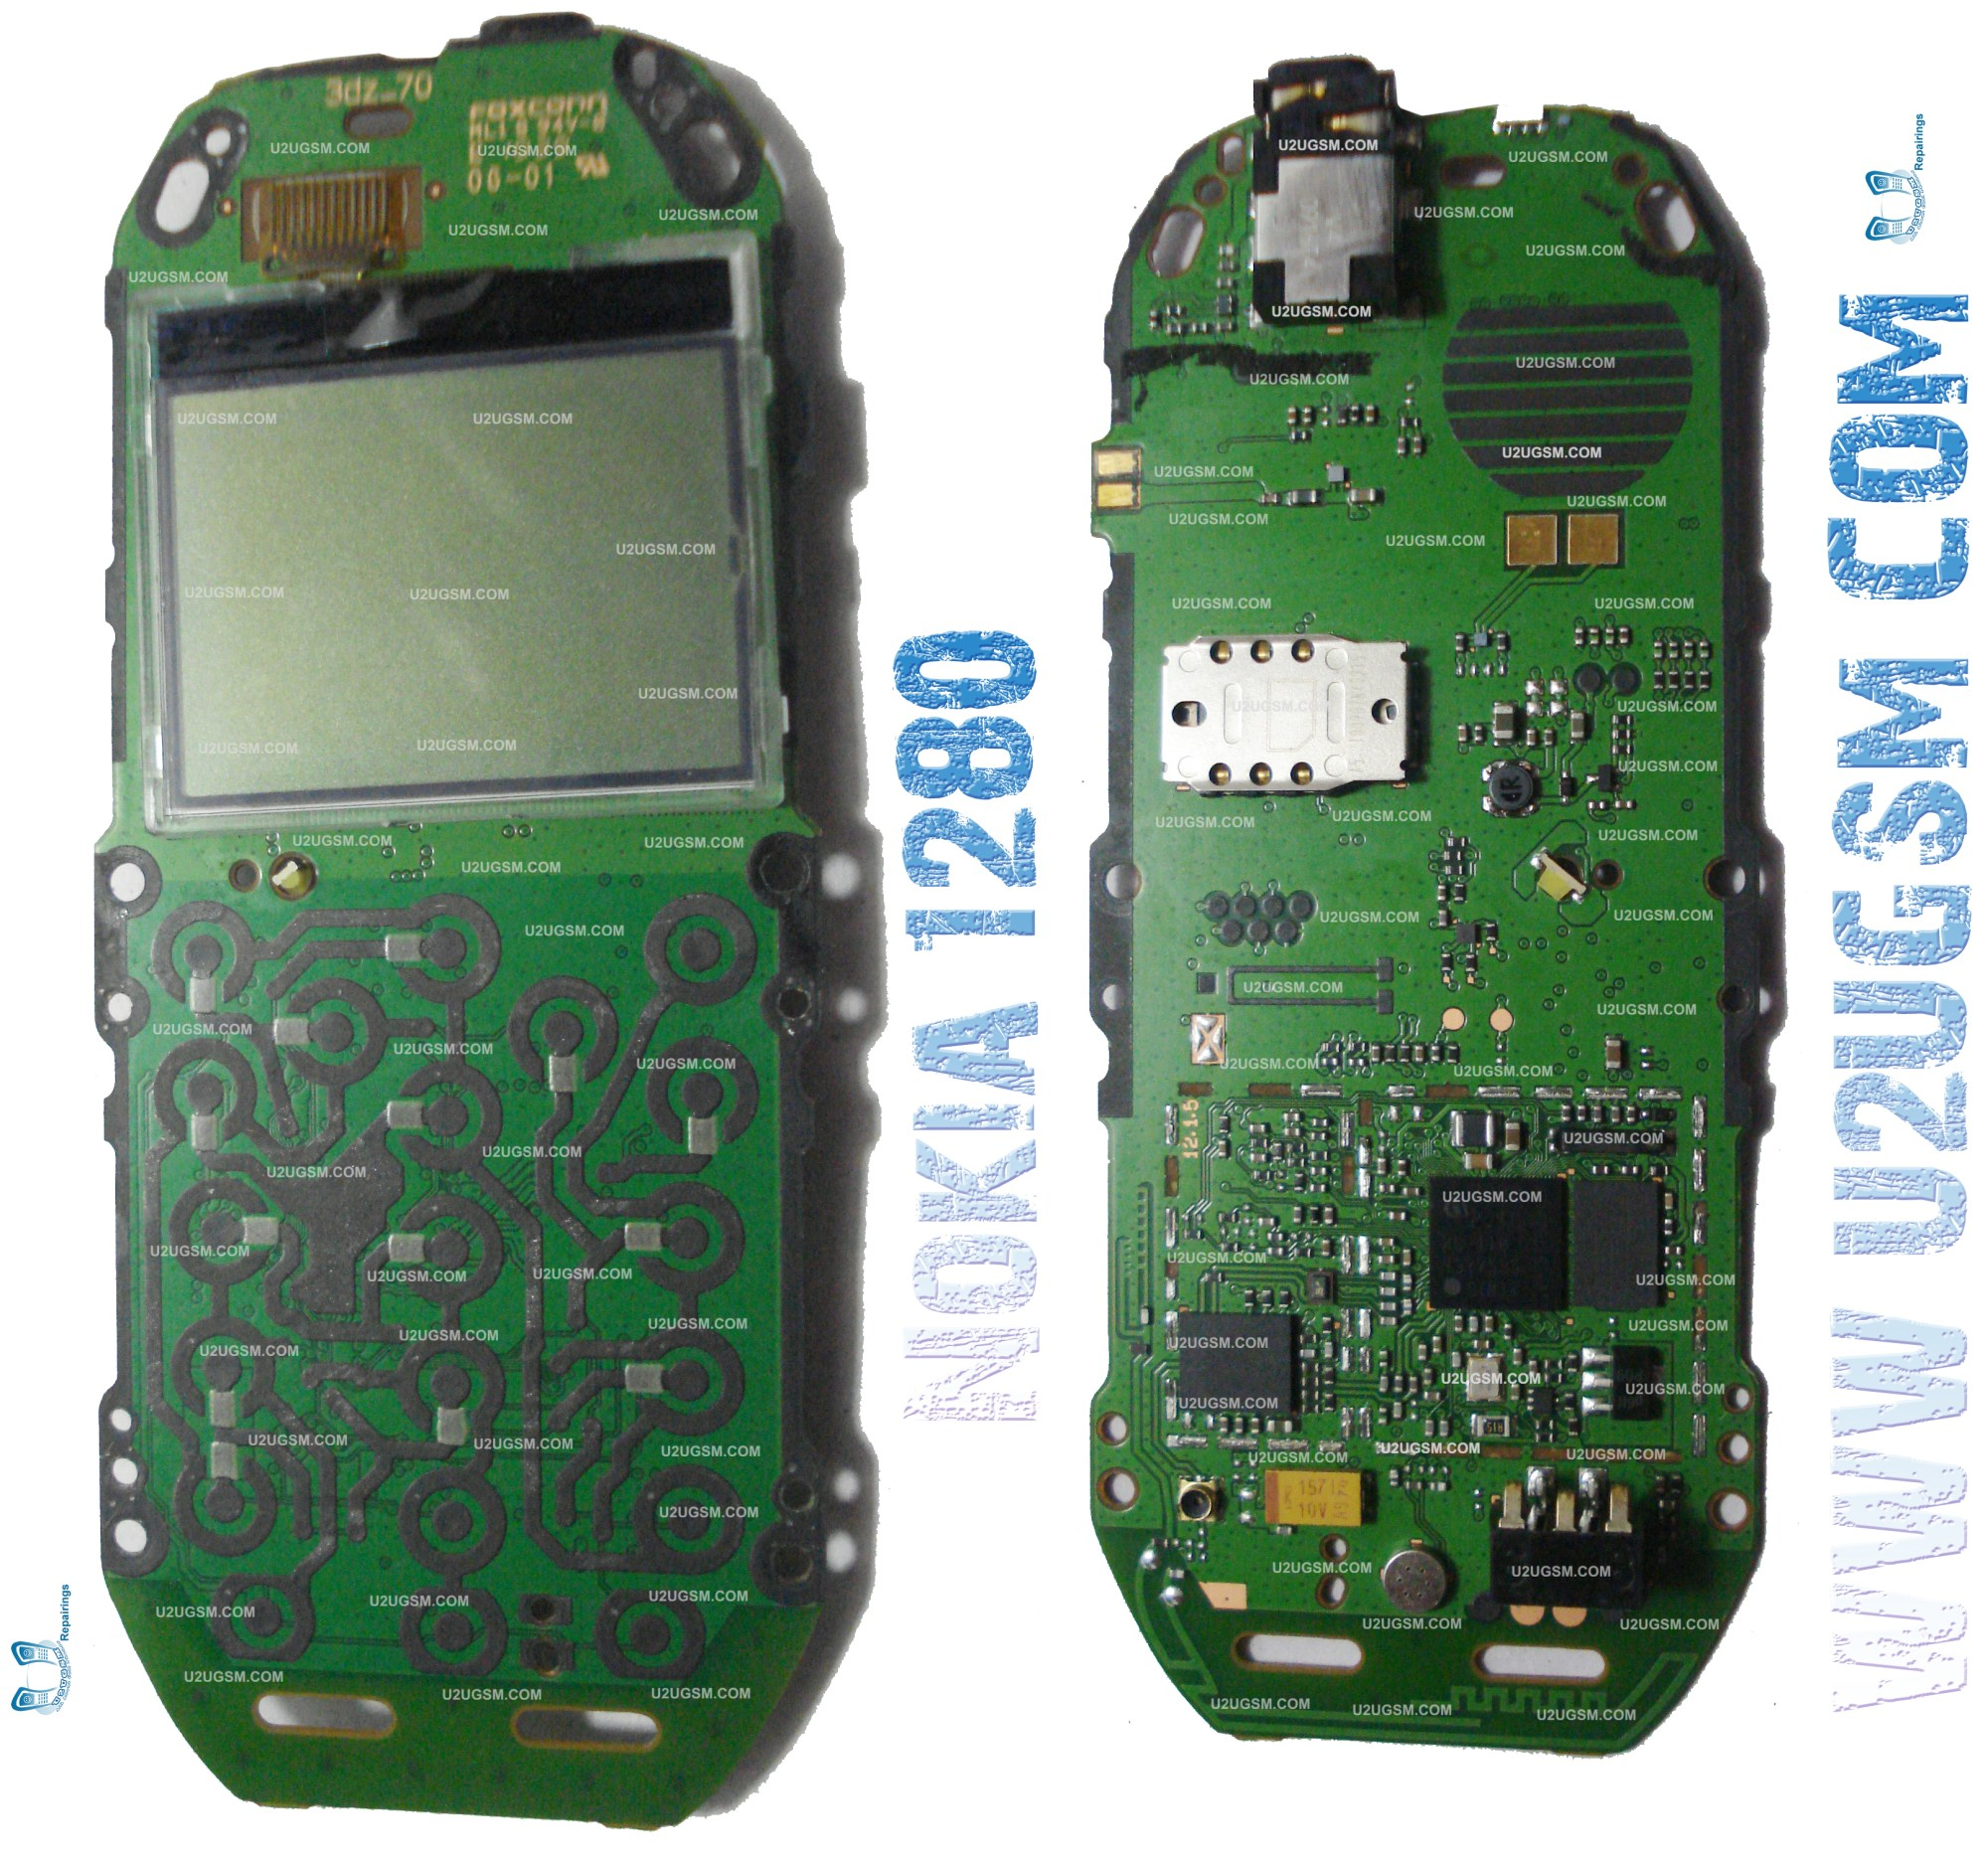 hight resolution of nokia 1280 if you find some new repairing techniques please must email me and i will post that diagram with your reference in this way we all make it